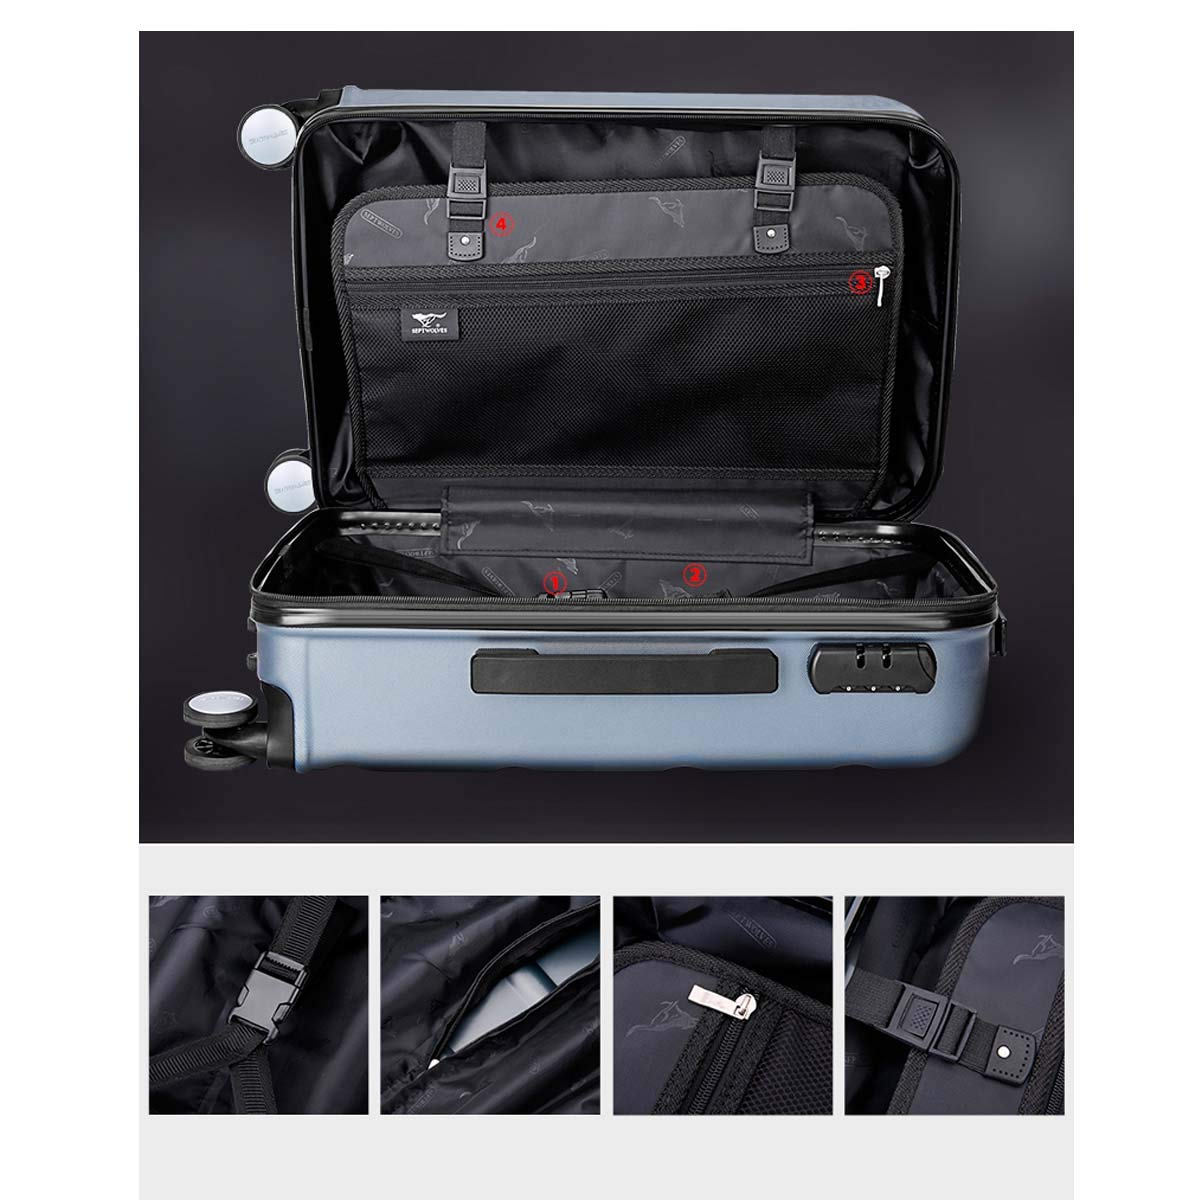 Best Gift Bahaowenjuguan Carrying Suitcase Hard case Black 20//24 inches Color : Brown, Size : 24 Rotating Suitcase Travel Organizer